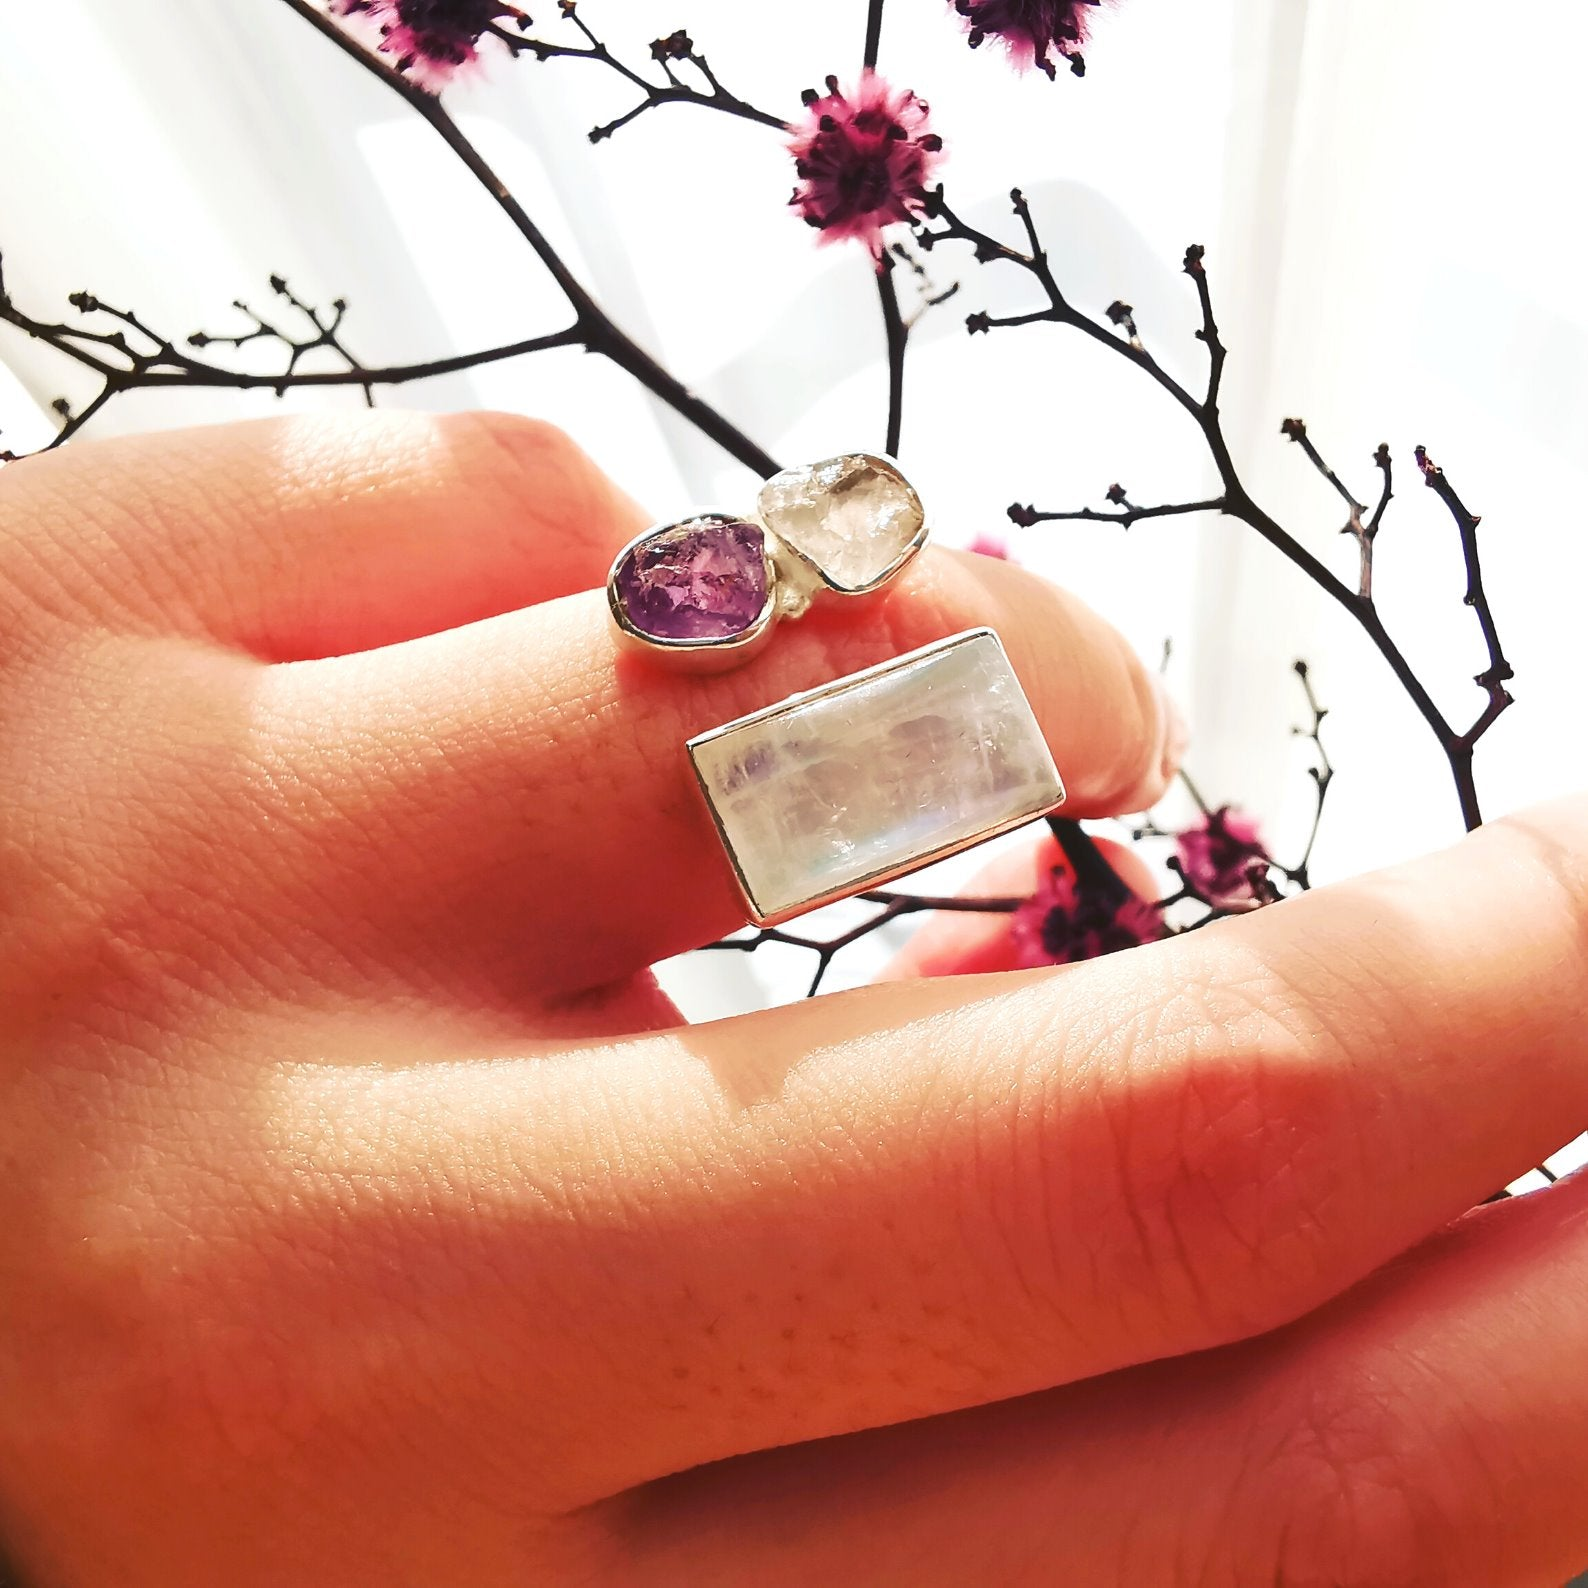 Stunning Handmade Adjustable Multi Stone, Quartz, Amethyst & Moonstone Ring - Bolino Studio - Minimalist Jewellery